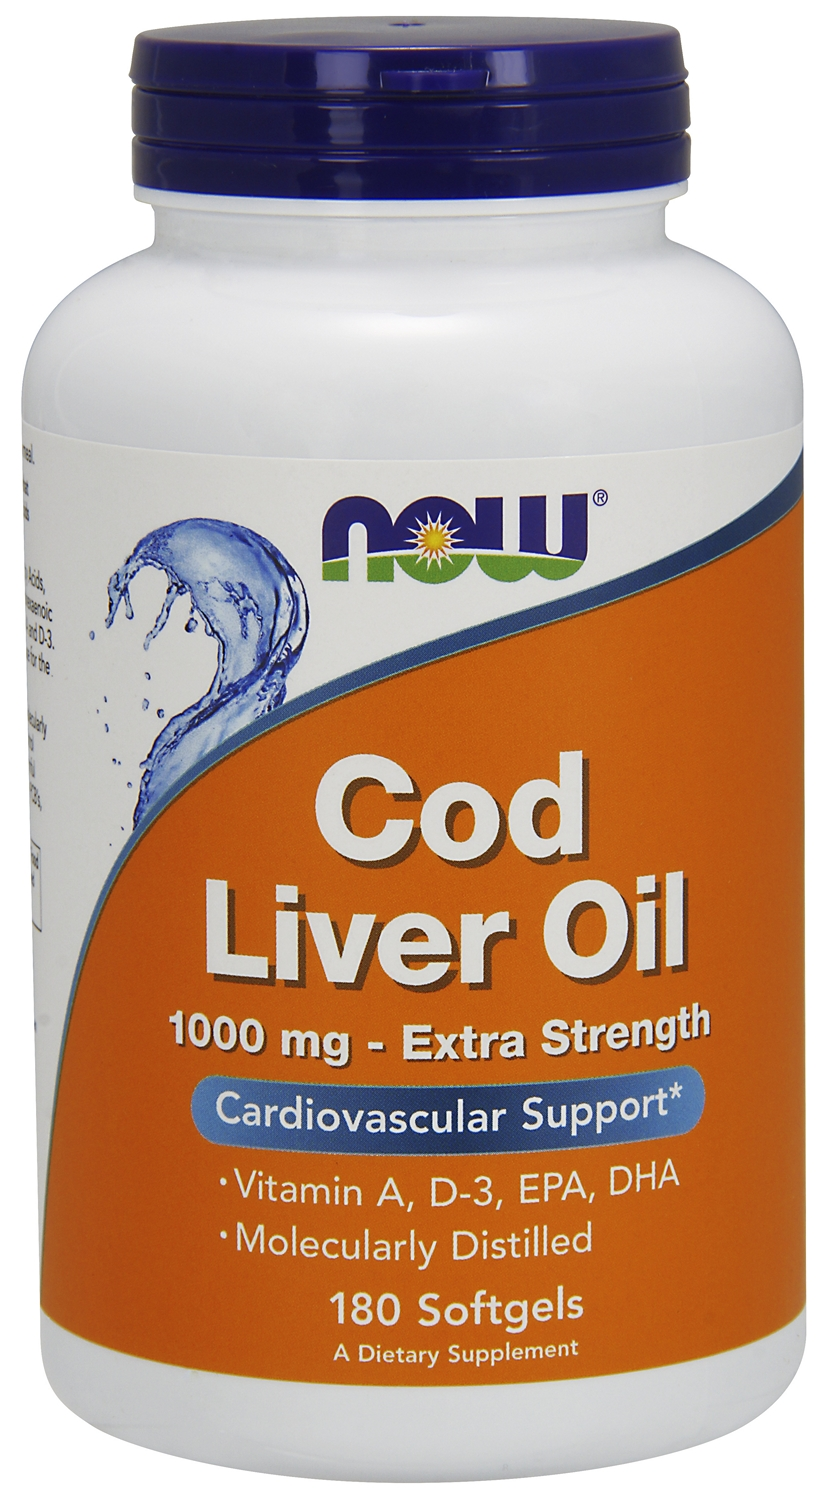 Cod Liver Oil 1,000 mg Extra Strength 180 sgels by NOW (expires 11/2015)